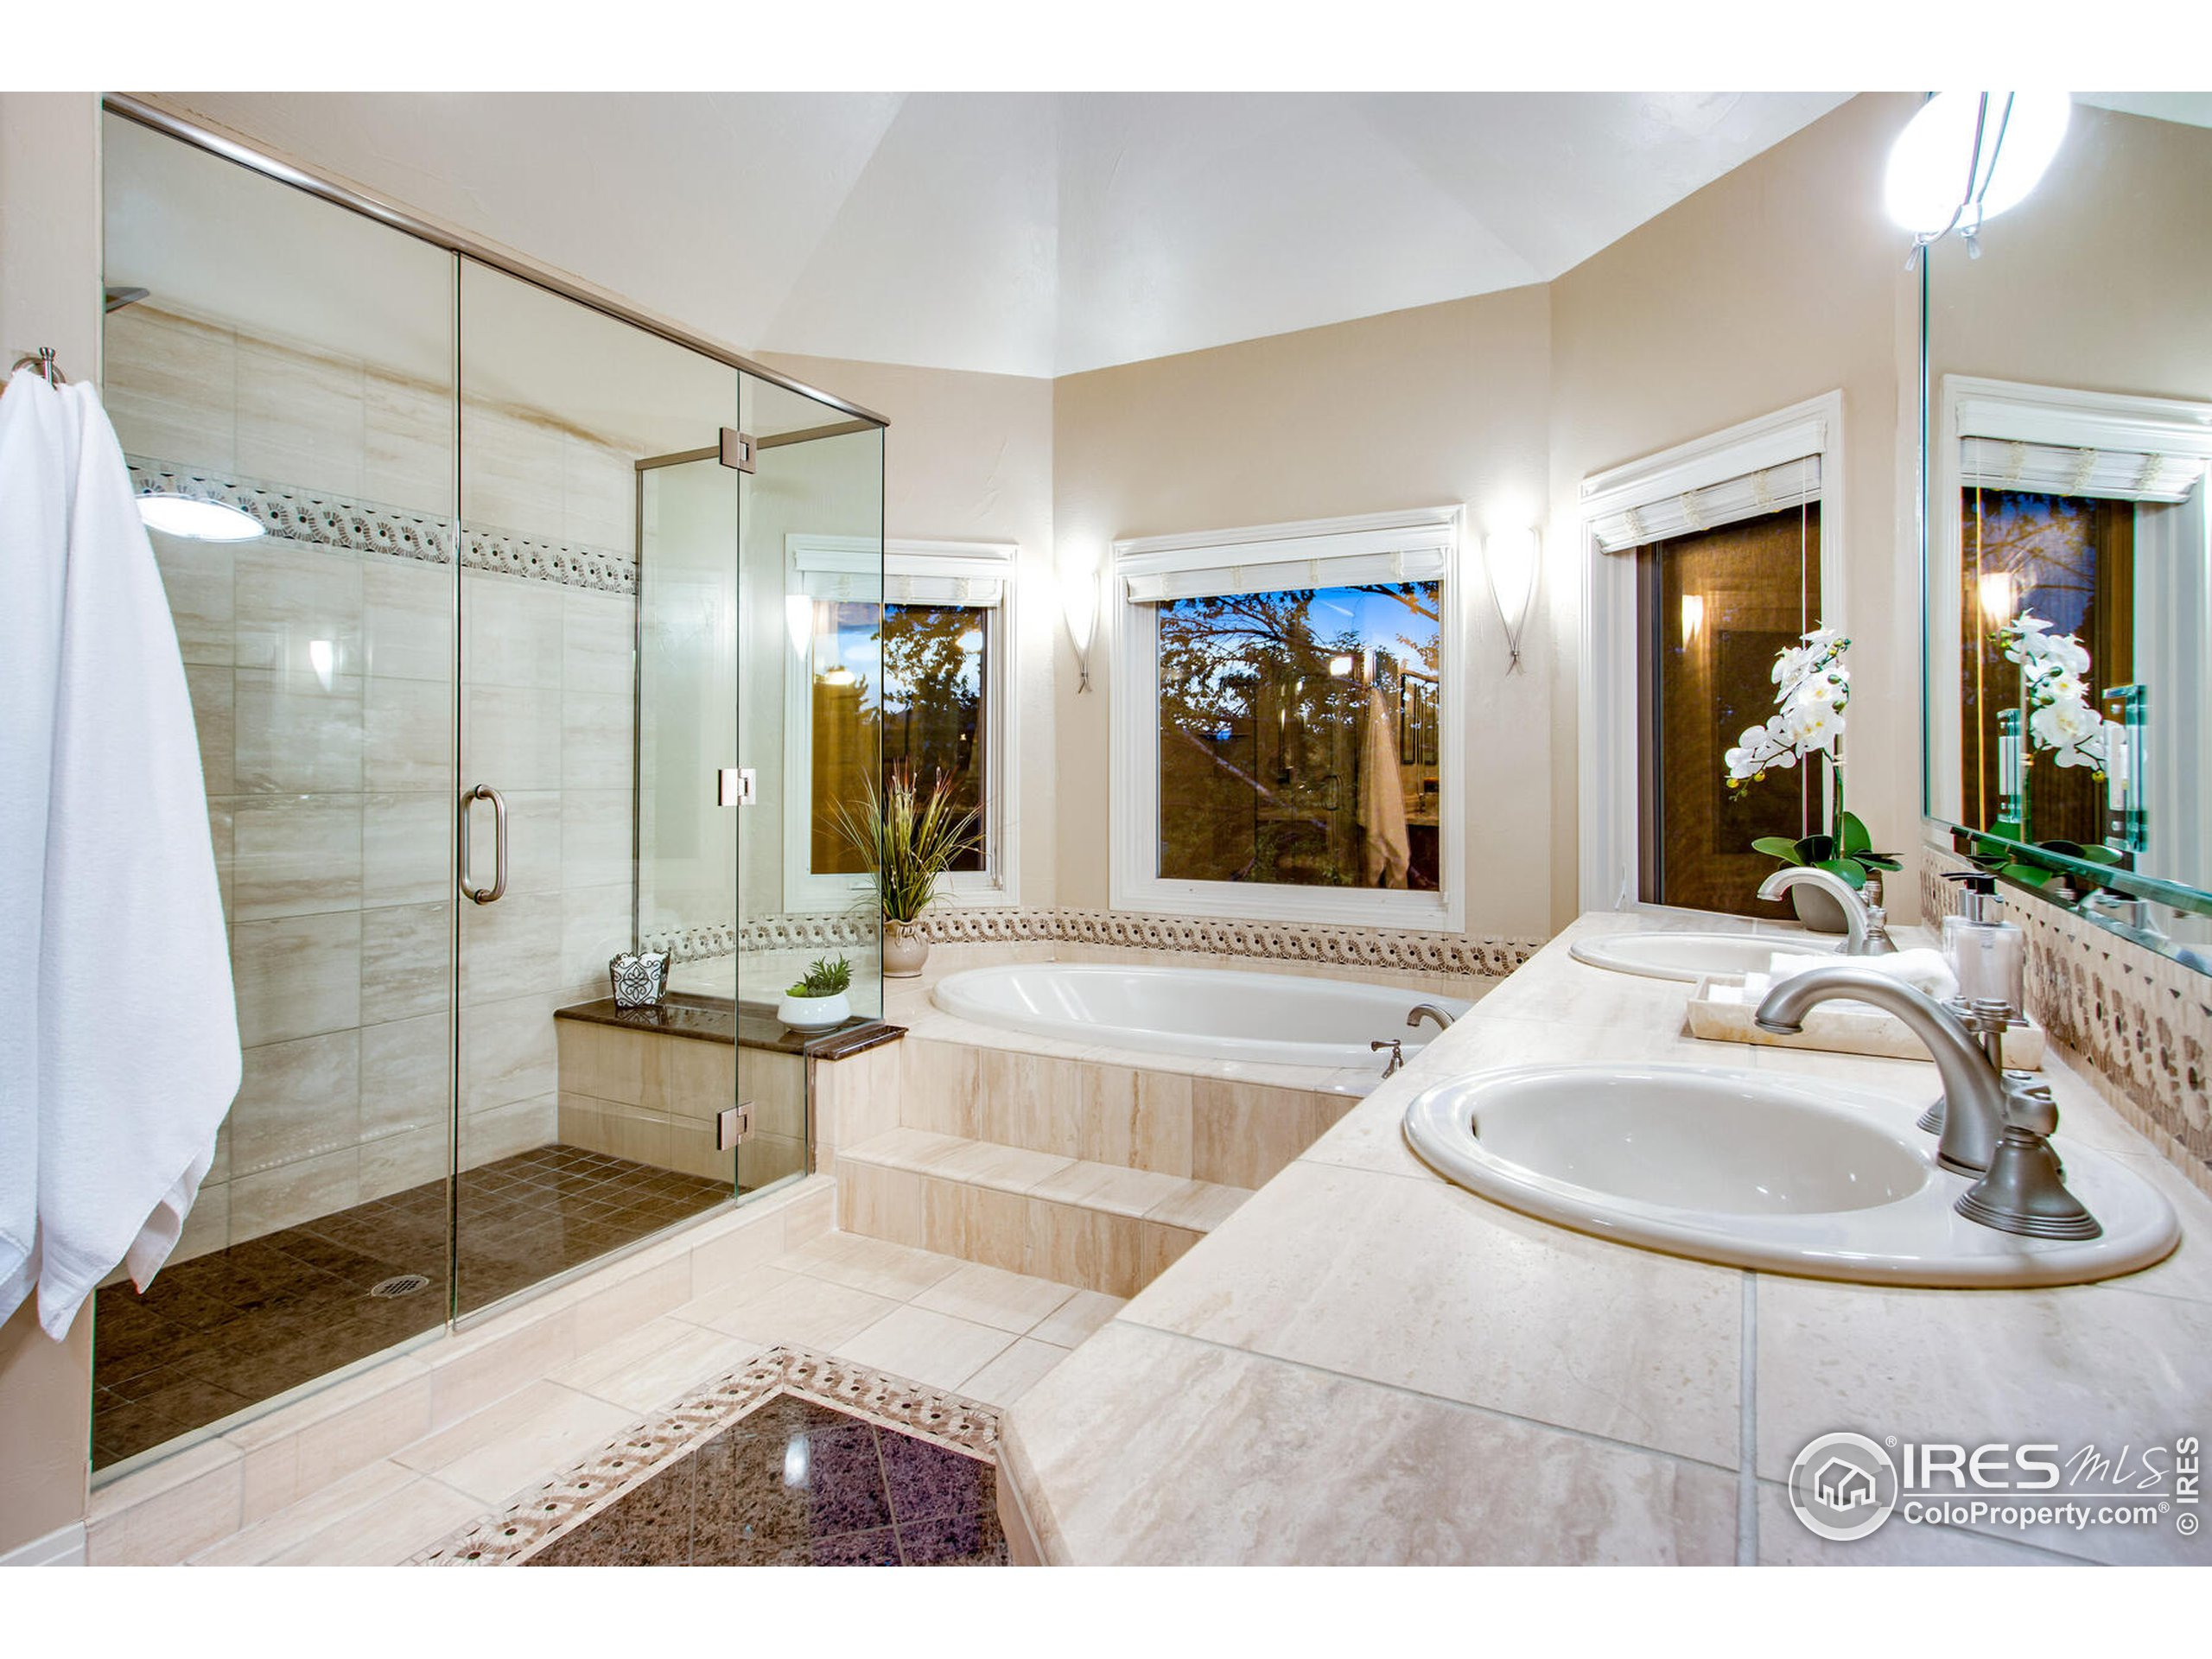 Luxurious Spa Bath with Jacuzzi Tub, Large shower and heated floors